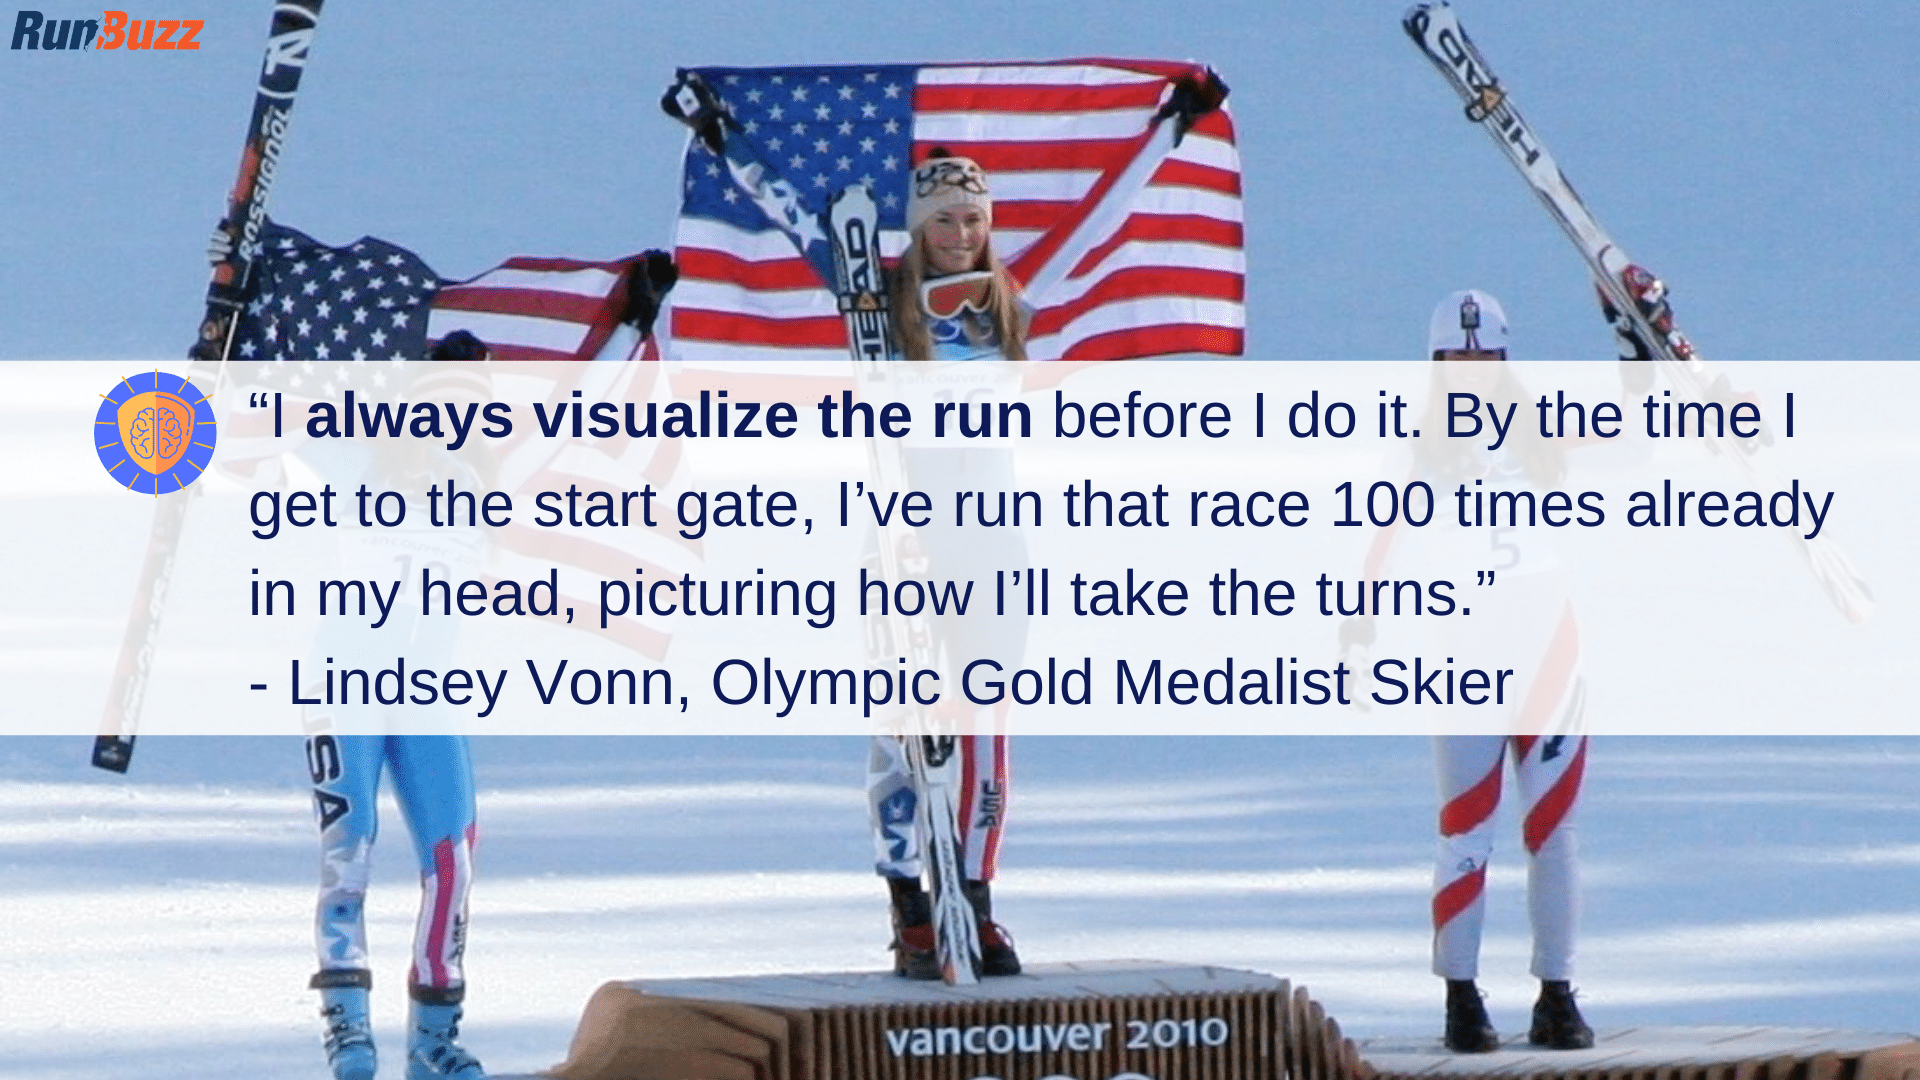 Visualize-the-run